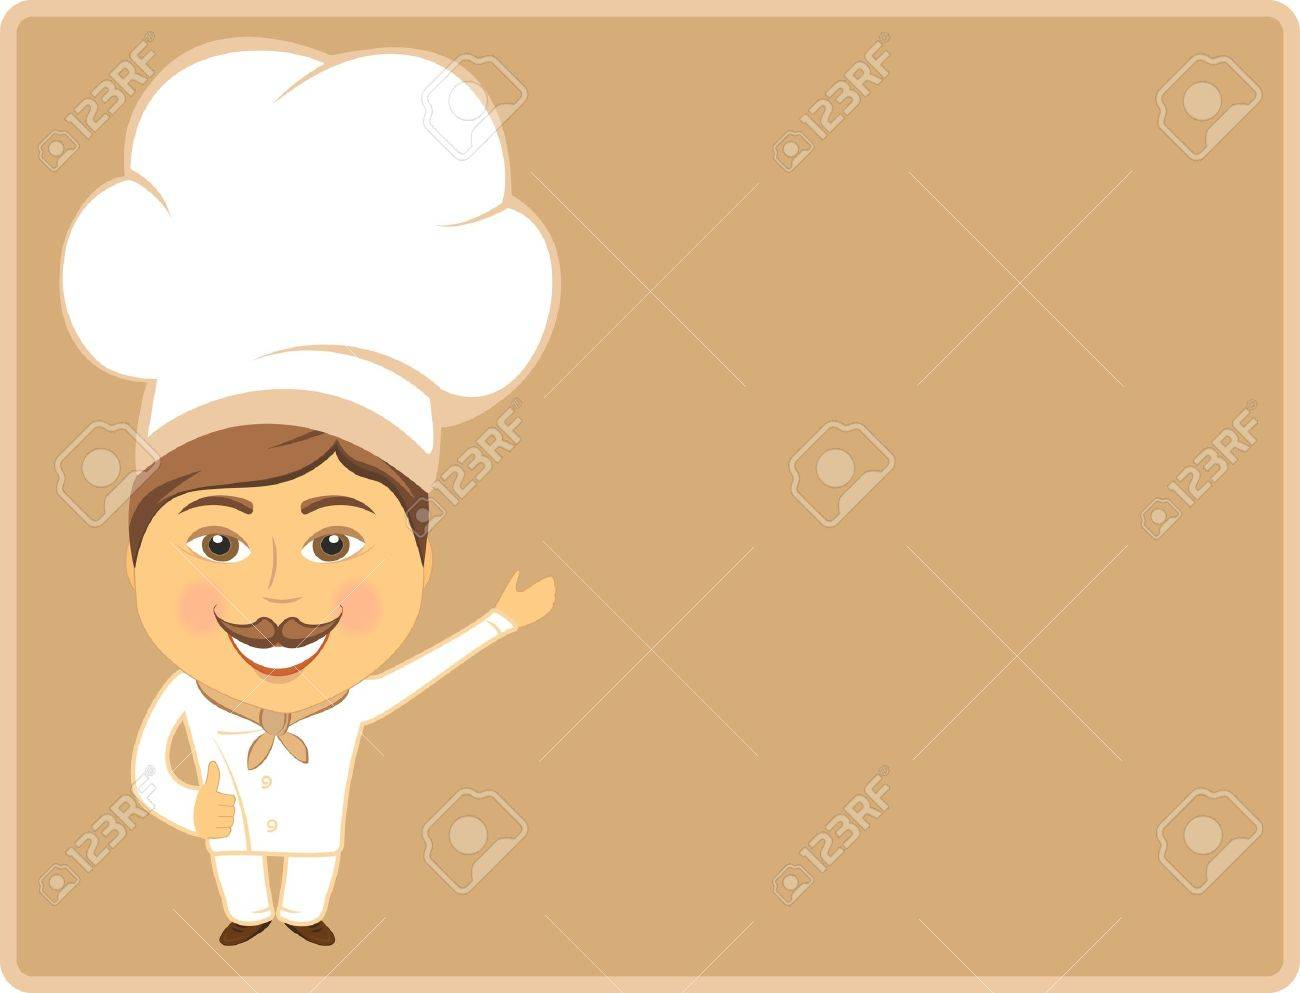 cheerful cook chowing thumb up on card on brown background Stock Vector - 12340520